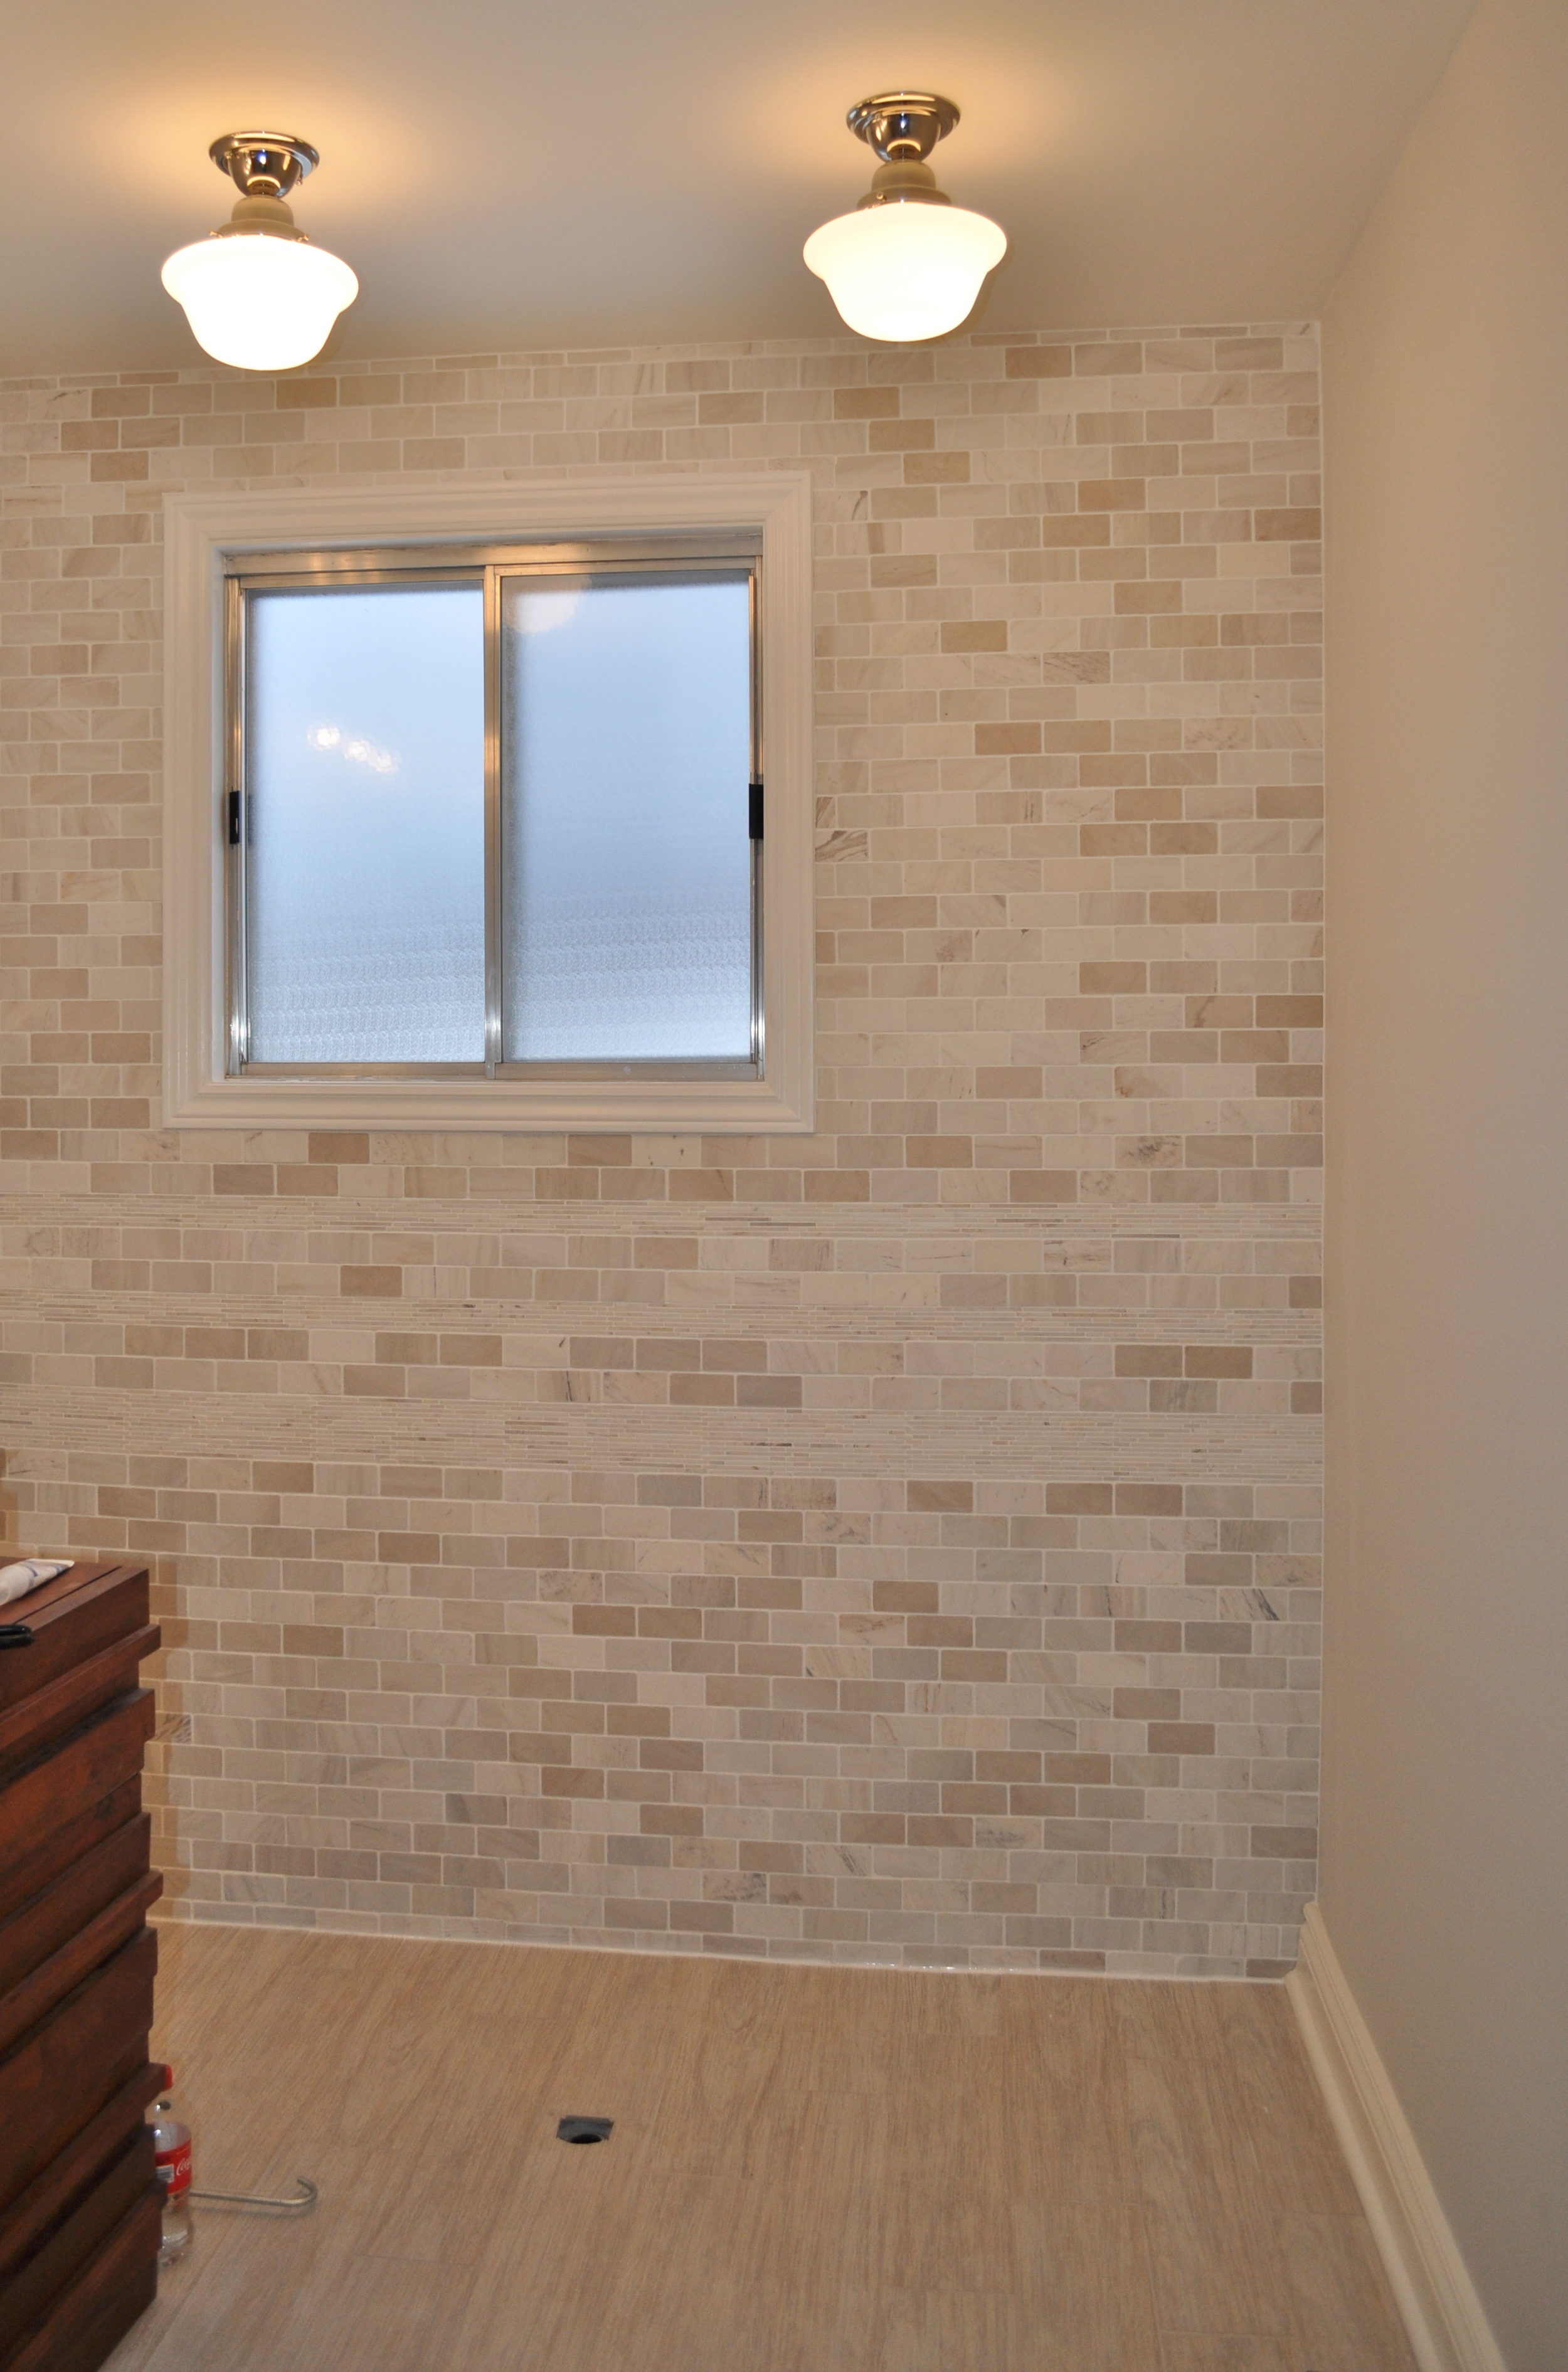 Bathroom Back Wall, Grouted